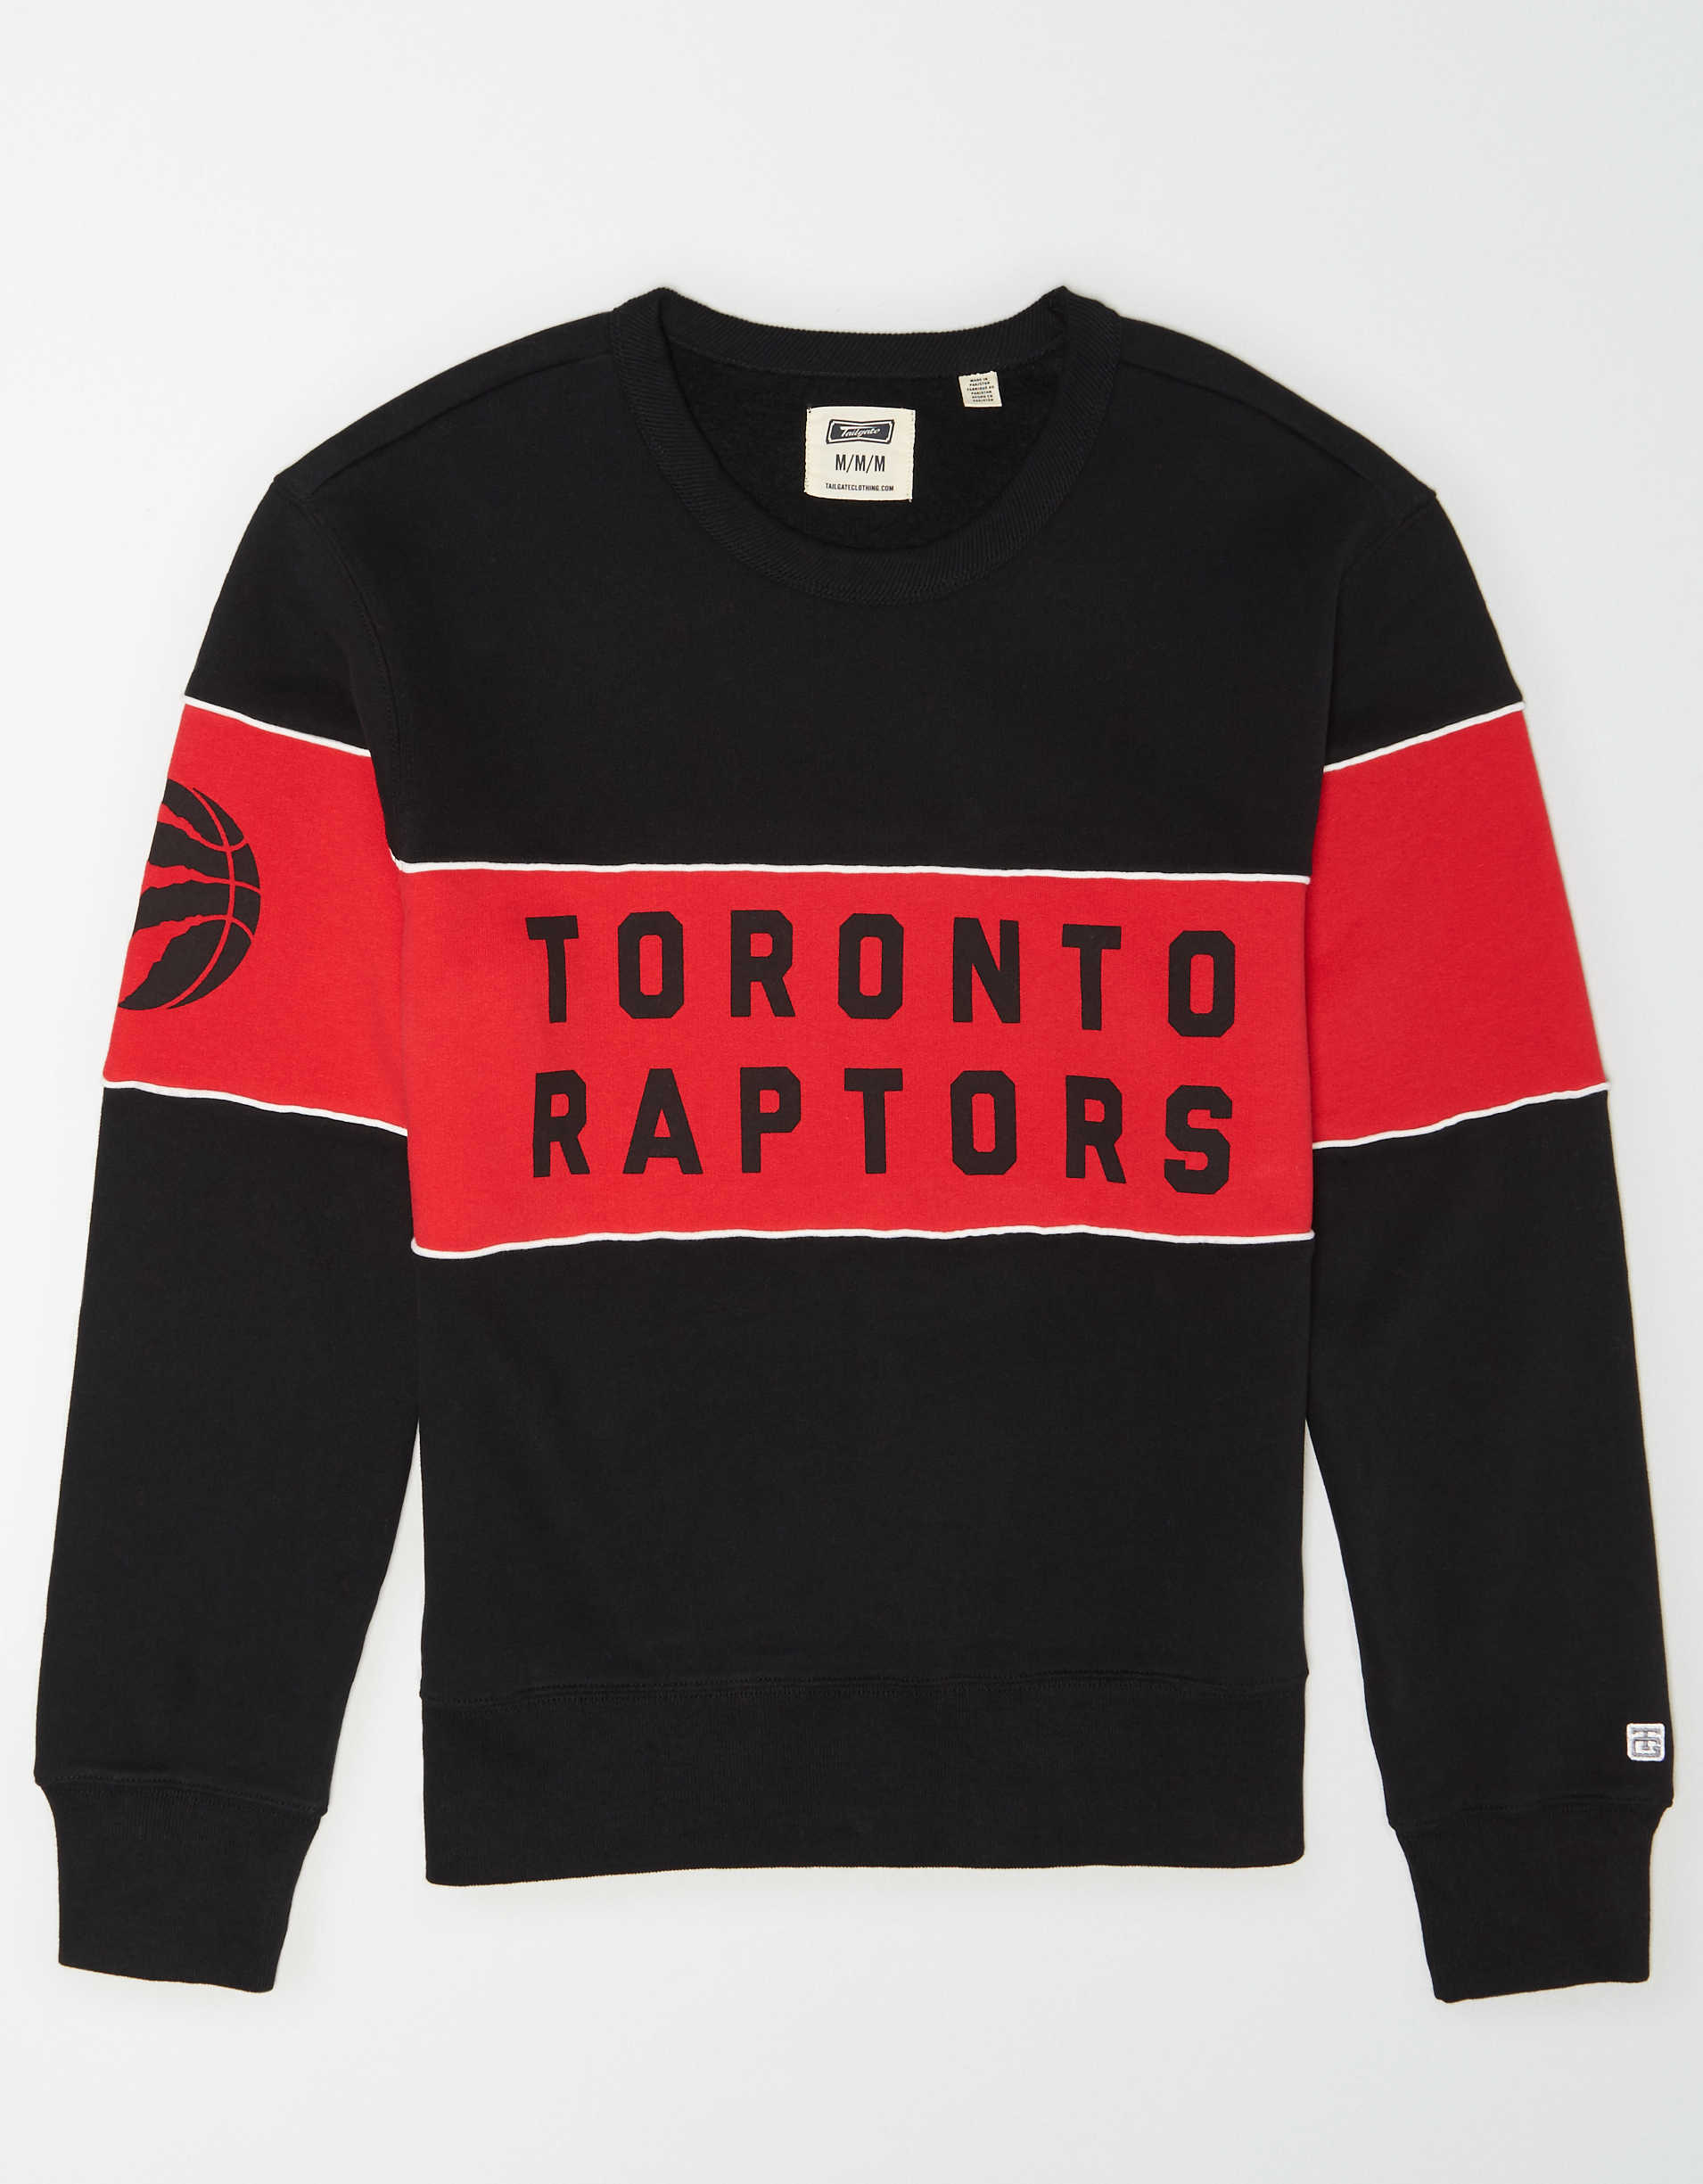 Tailgate Men's Toronto Raptors Fleece Sweatshirt